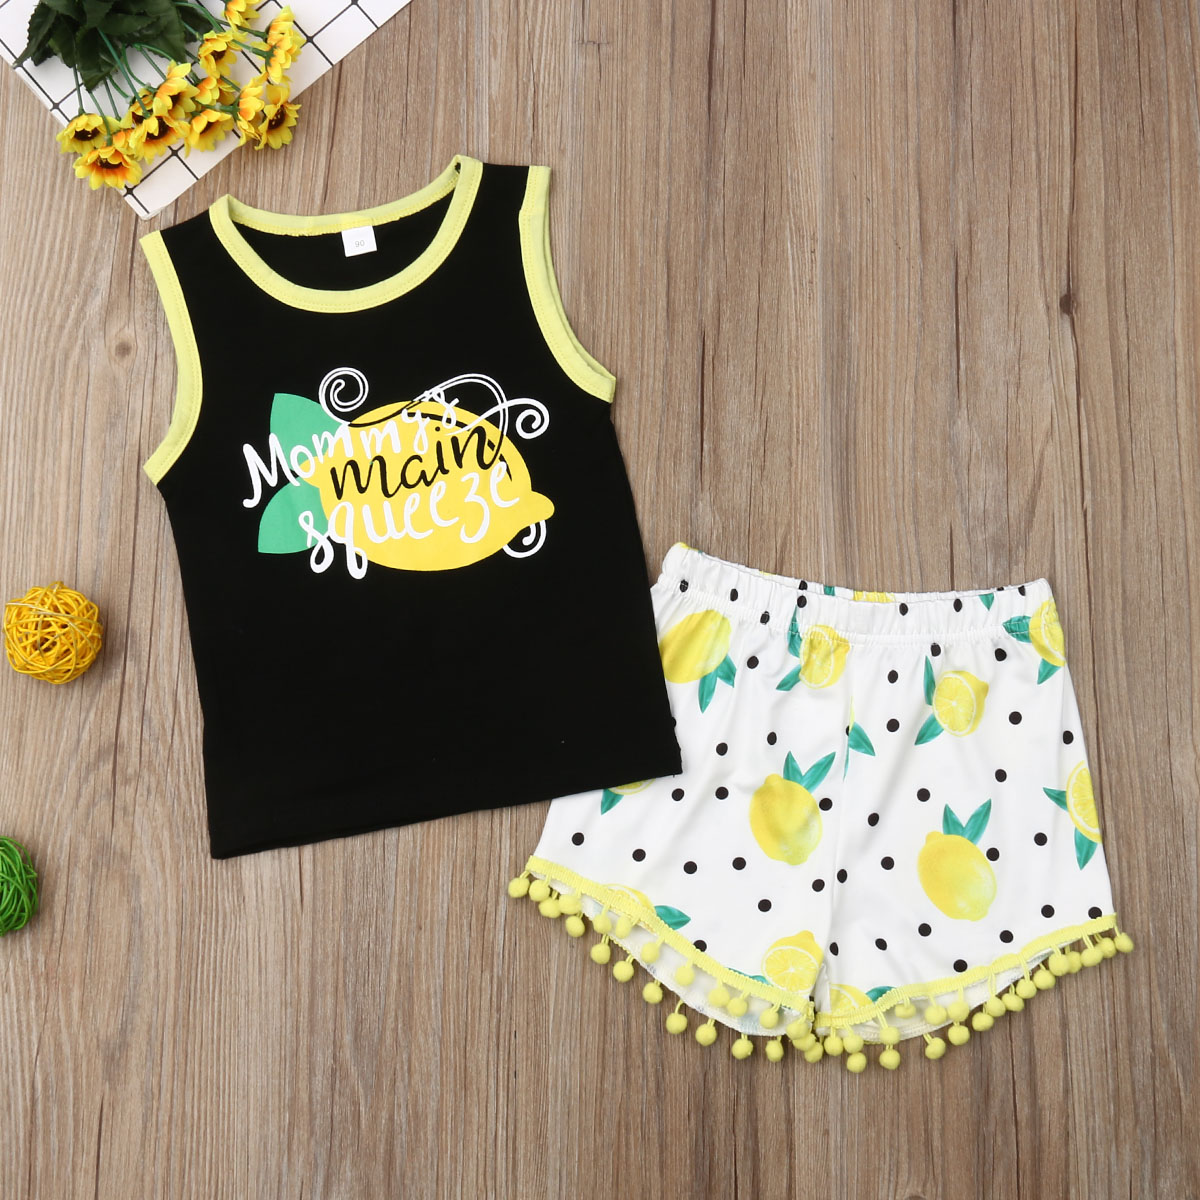 Pudcoco Summer Toddler Baby Girl Clothes Fruits Print Cotton Sleeveless Tops Vest Tassel Shorts 2Pcs Outfits Clothes Summer